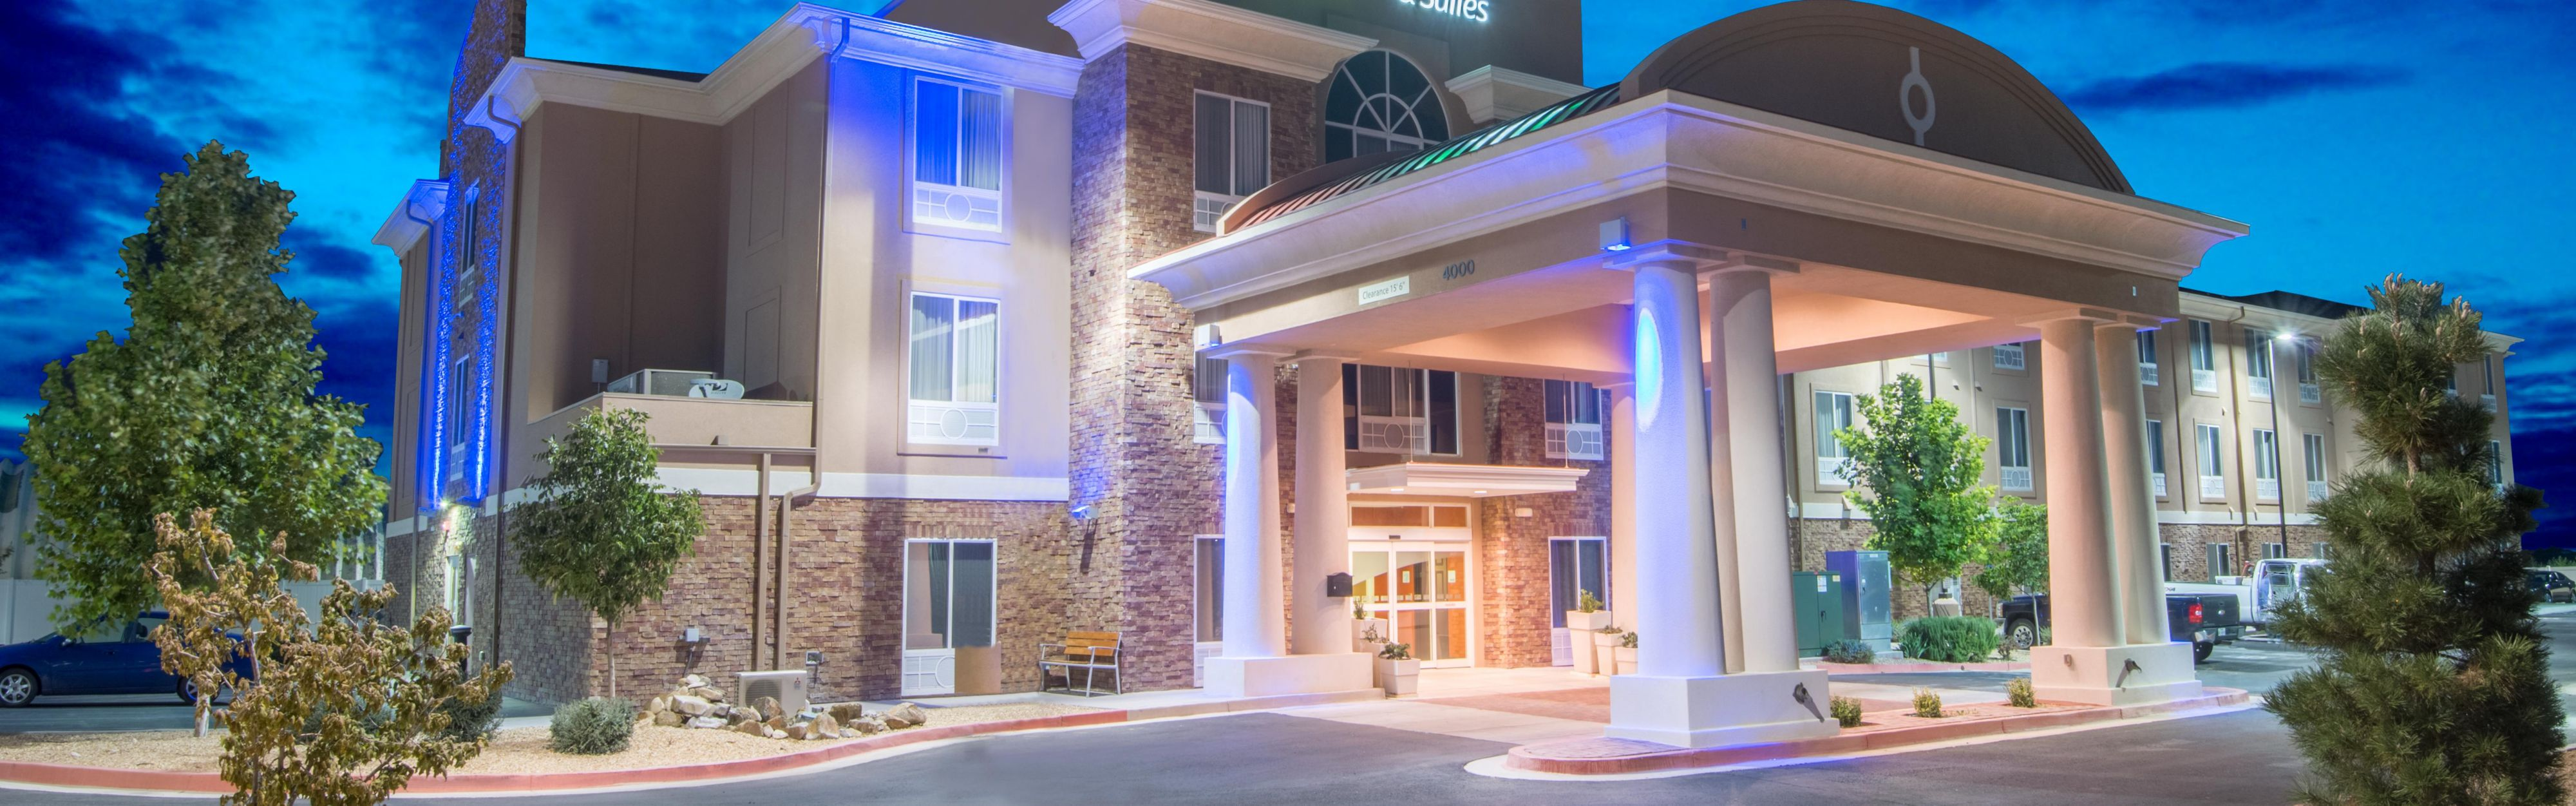 Holiday Inn Express amp Suites Hobbs Hotel by IHG